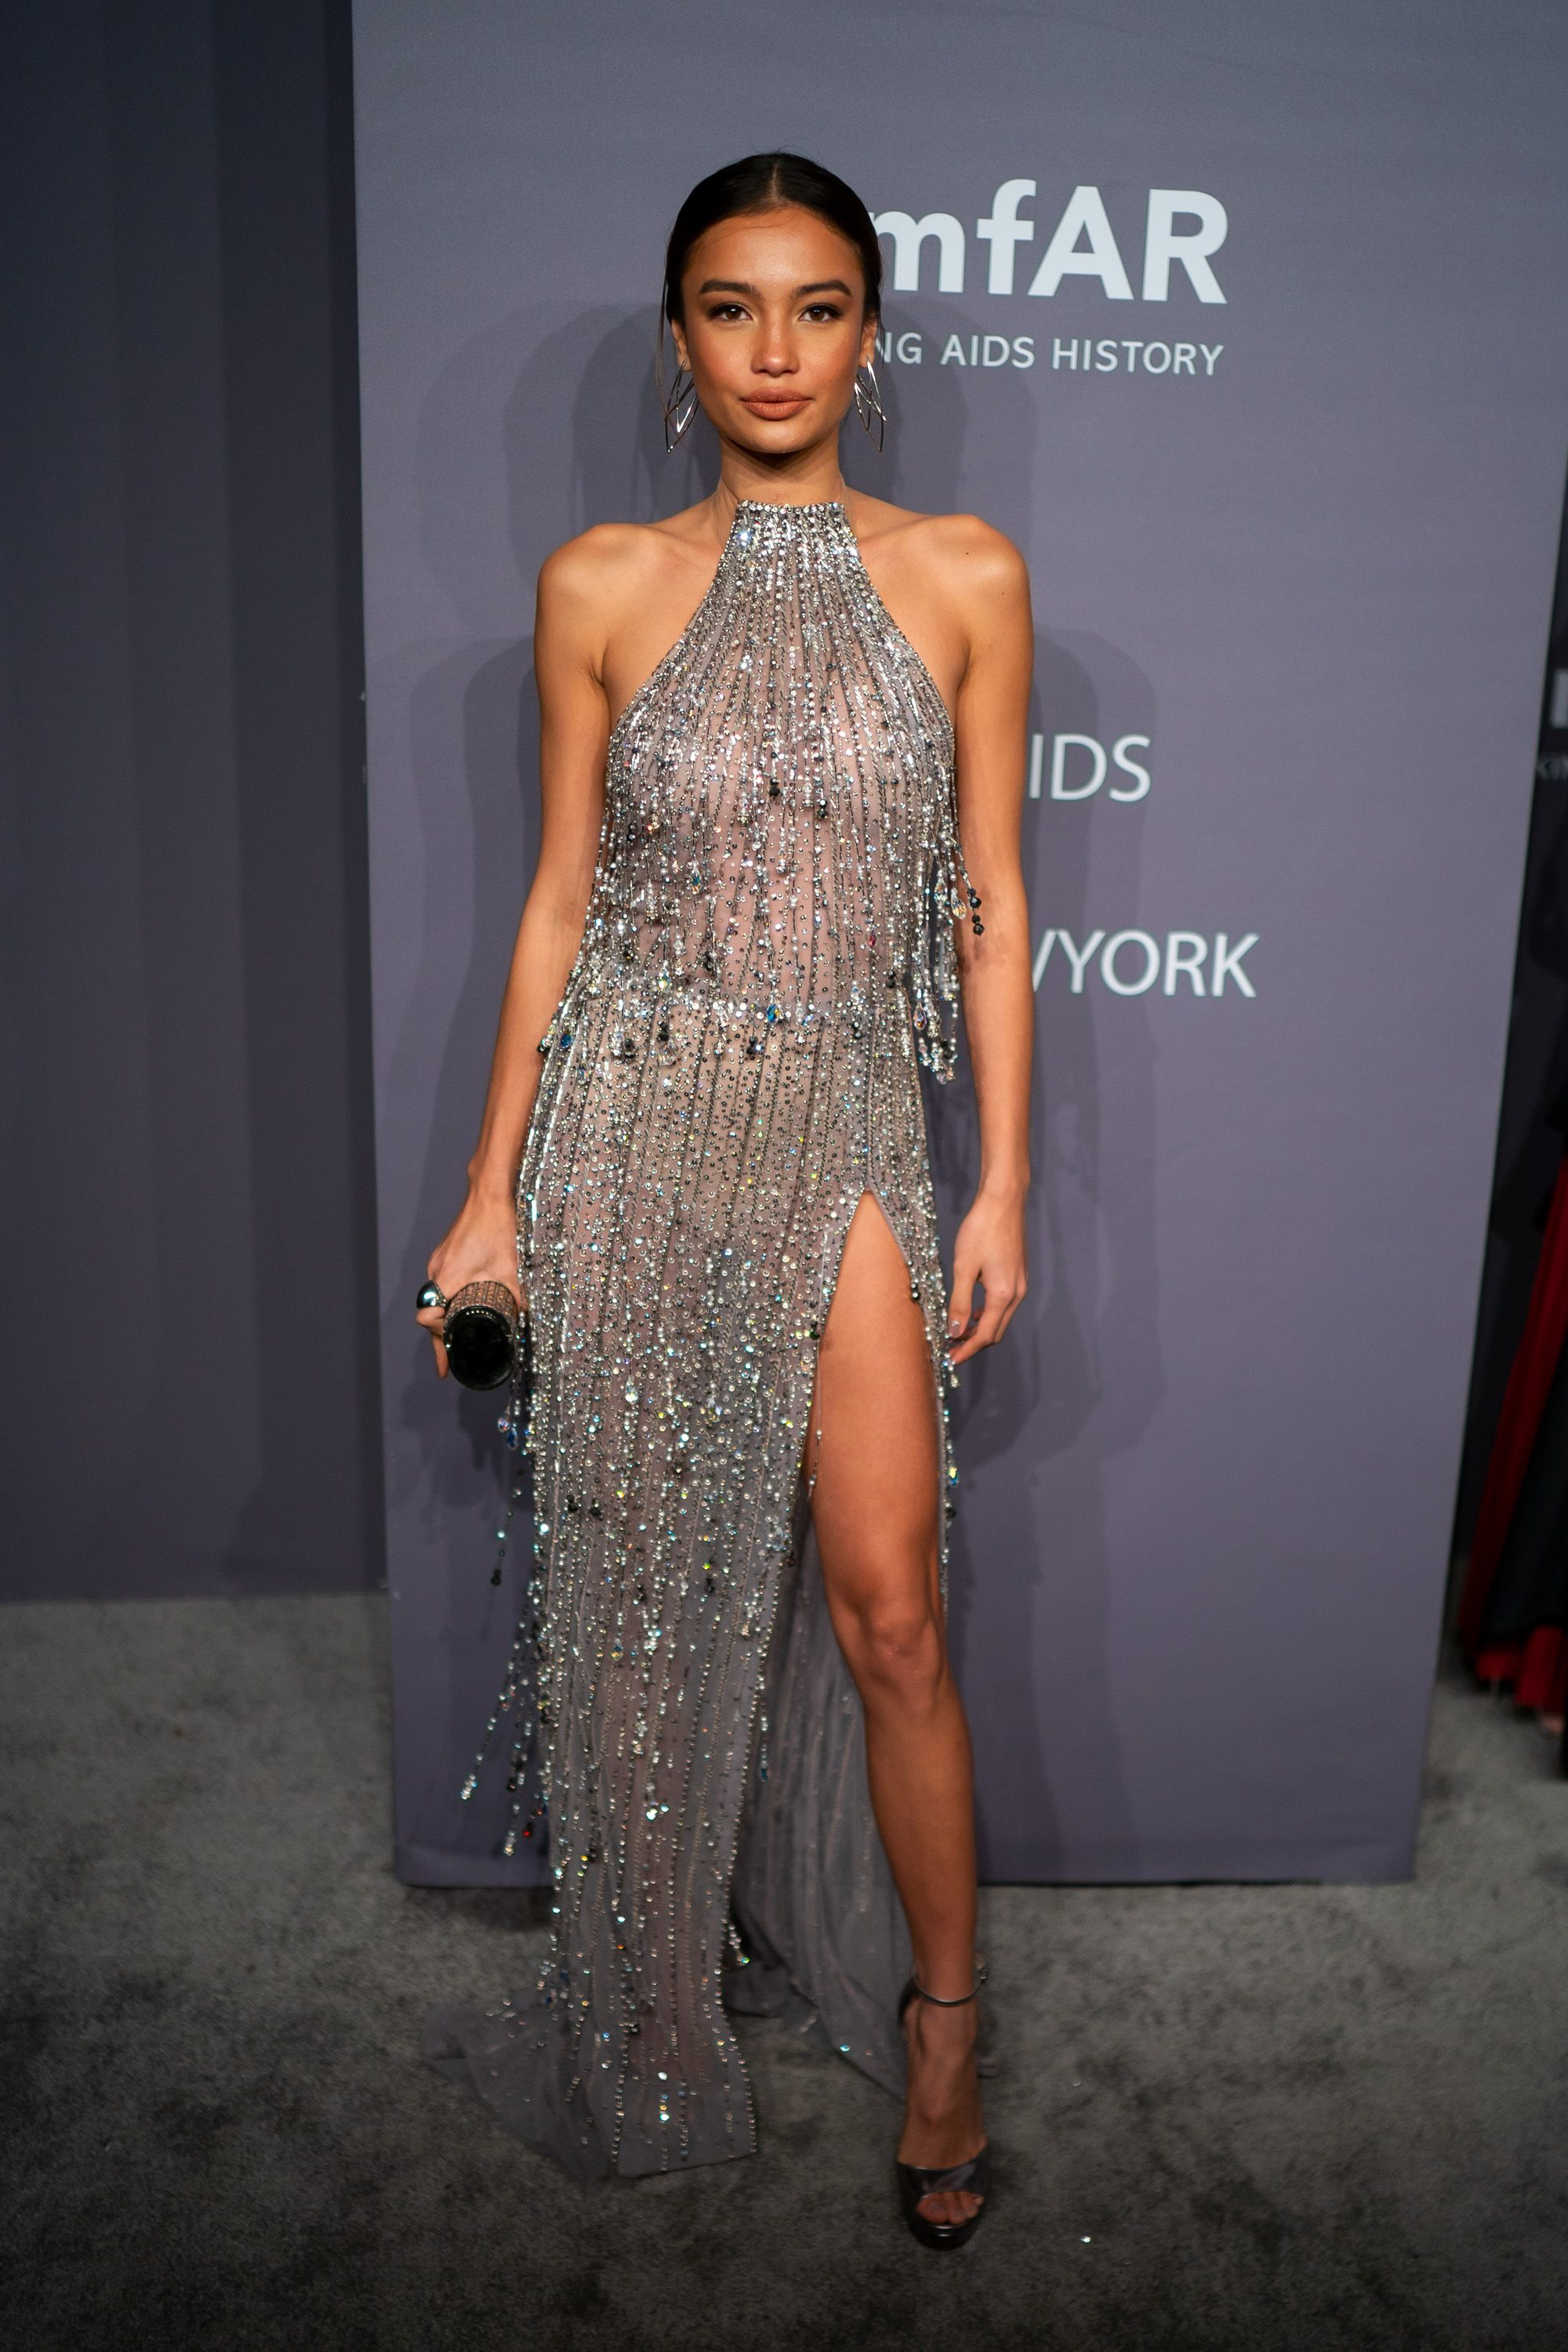 Kelsey Merritt Seems like models love to wear beaded sheer dresses, huh? The 22-year-old star rocked this Georges Hobeika thigh-high slit dress to the amfAR Gala in New York City.